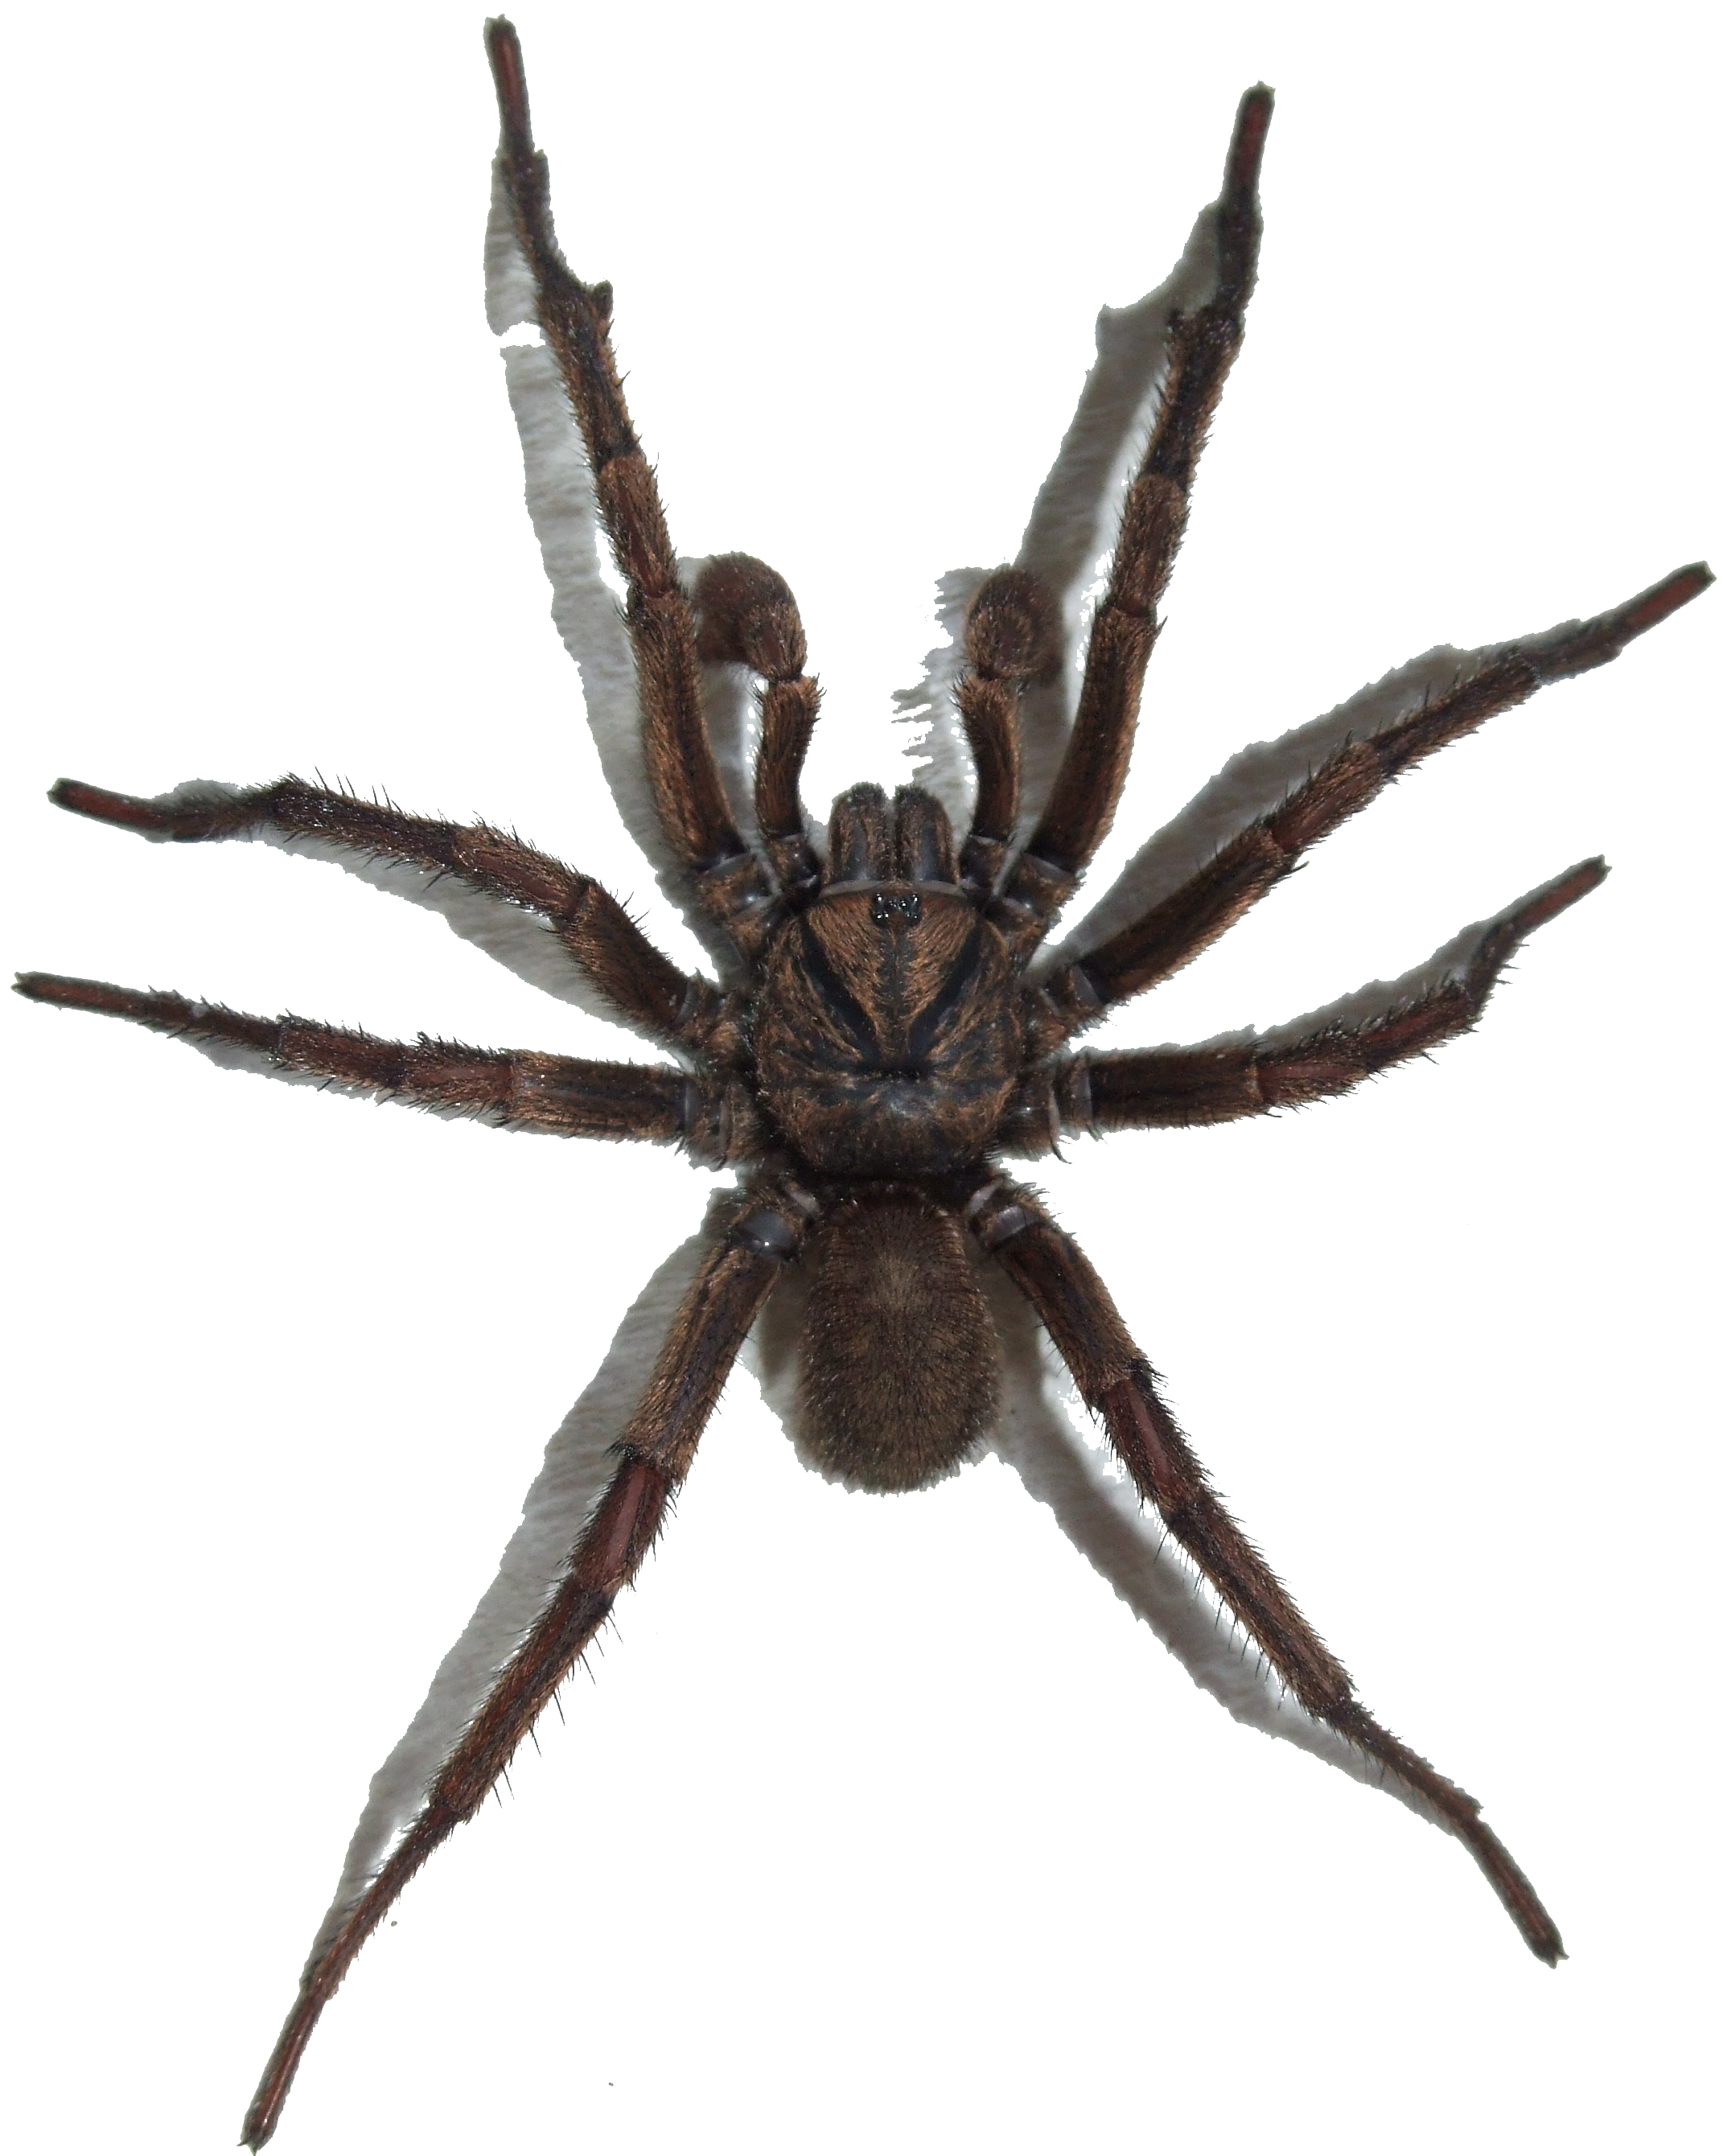 Png file transparent background. Brown trapdoor spider wikimedia